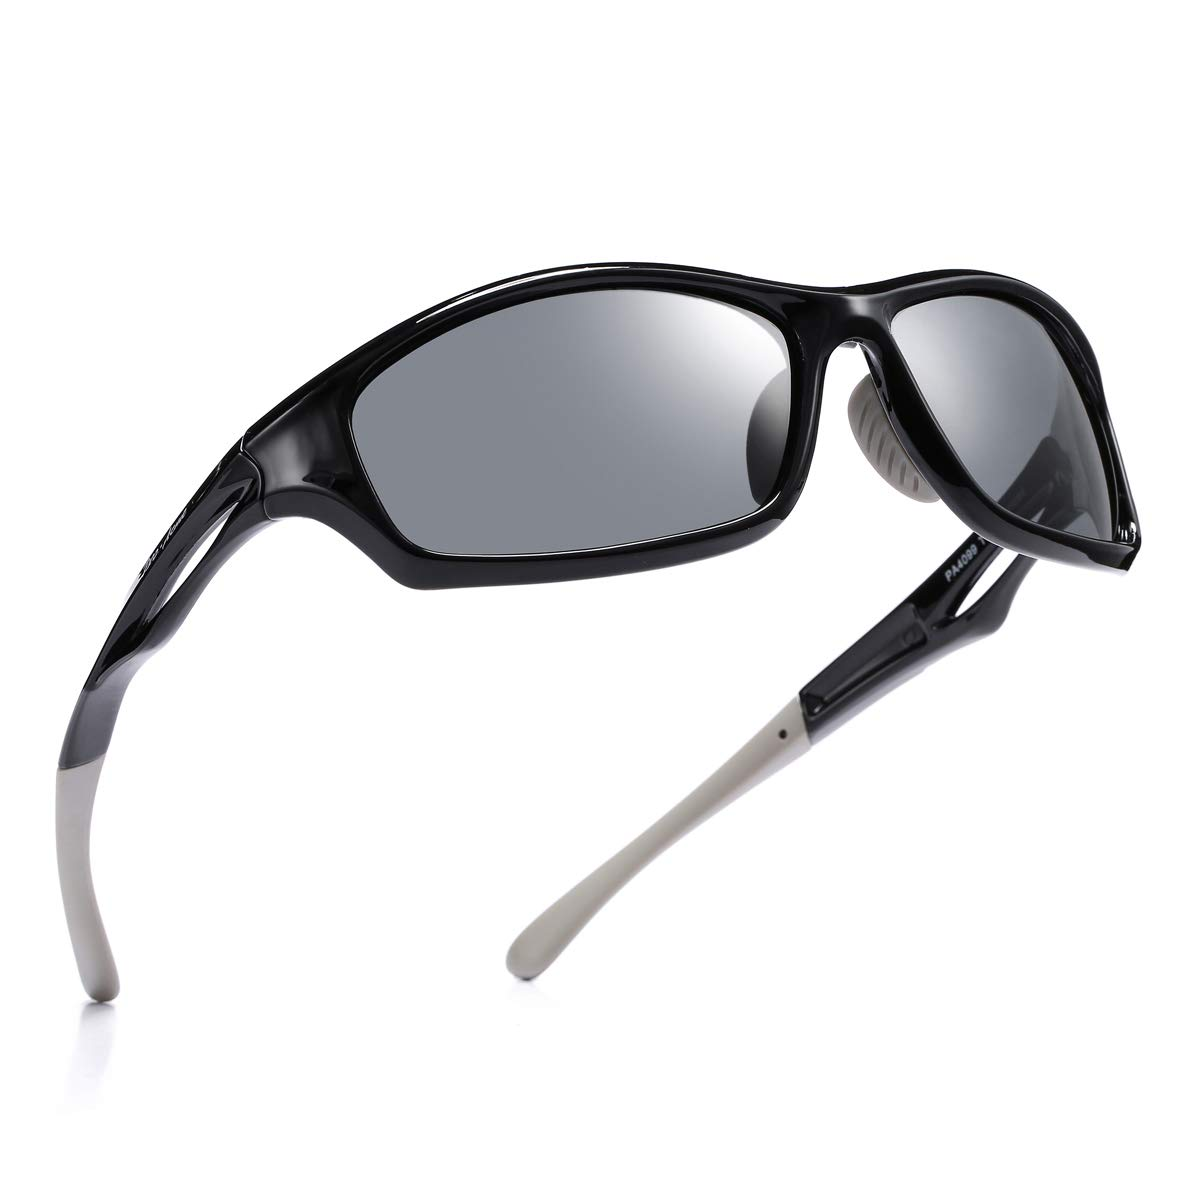 Pro Acme Polarized Sports Sunglasses for Men TR90 Unbreakable Frame (FDA Approved) (Jet Black) by Pro Acme